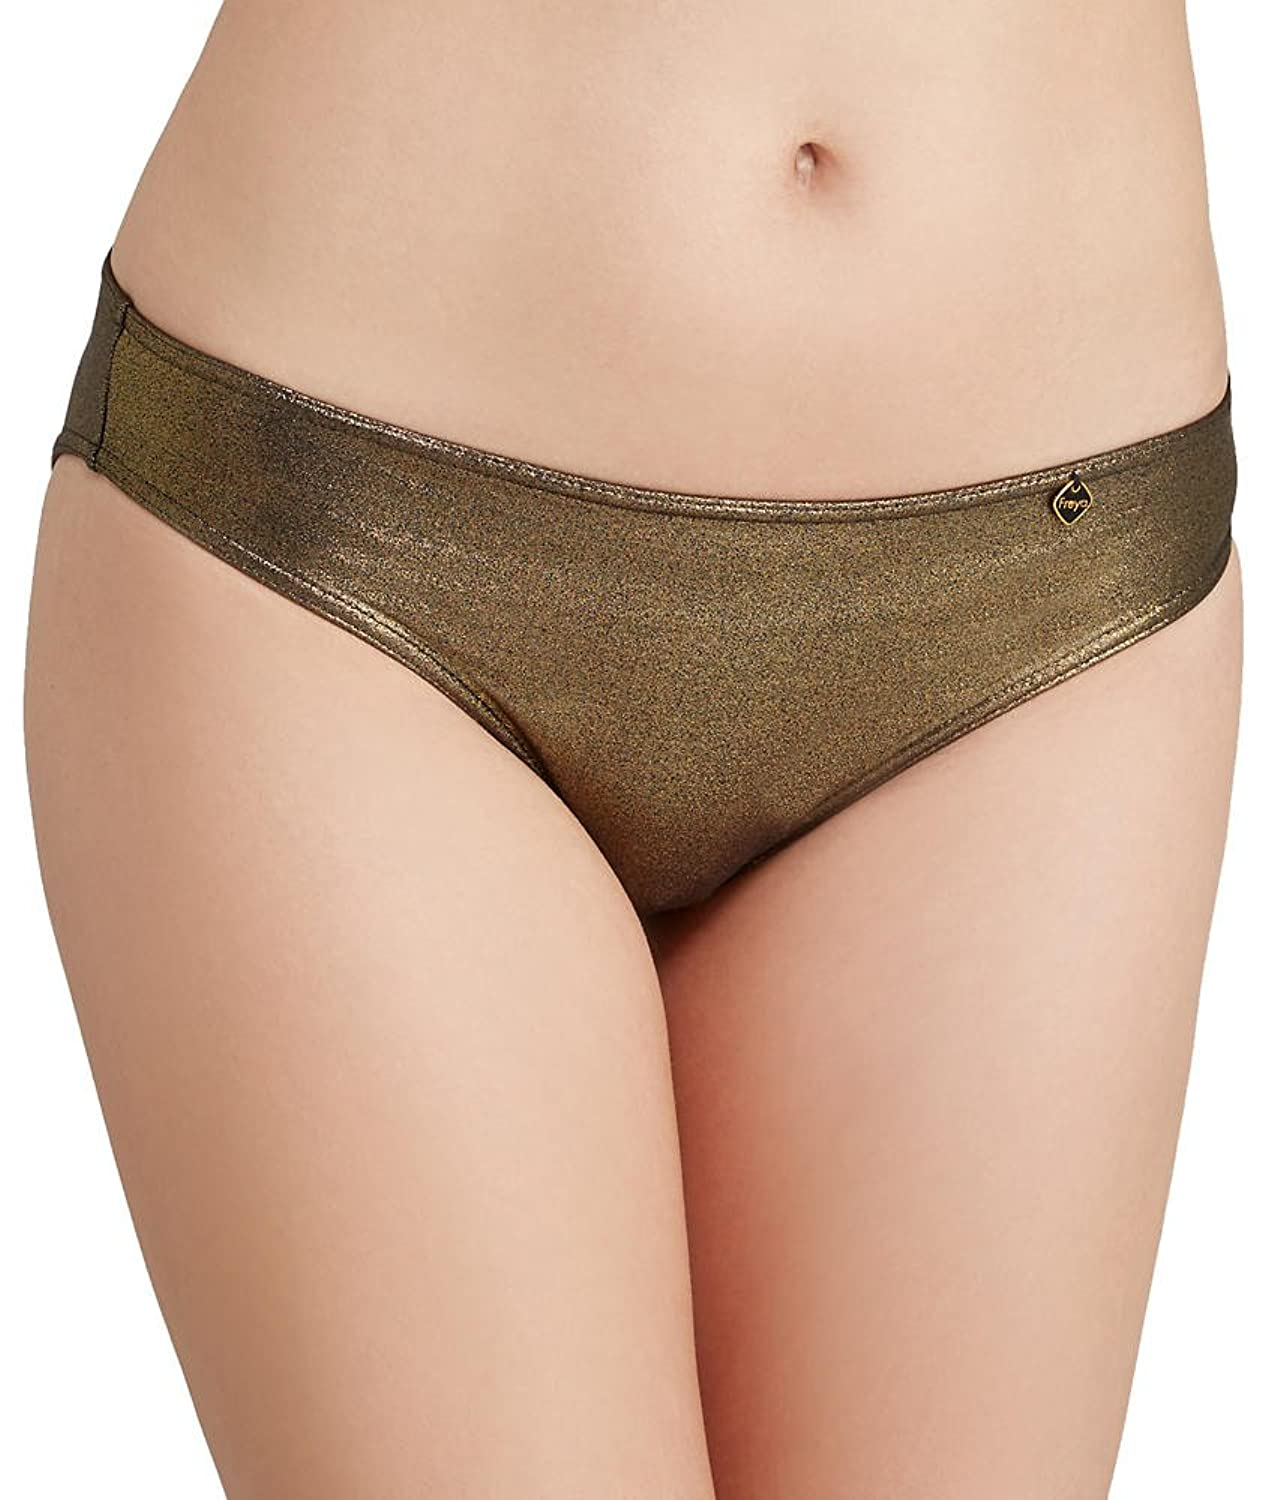 7128bed1ef8a Freya Swimwear Gold Rush Ultra Low Rise Hipster Brief Gold Rush:  Amazon.co.uk: Clothing